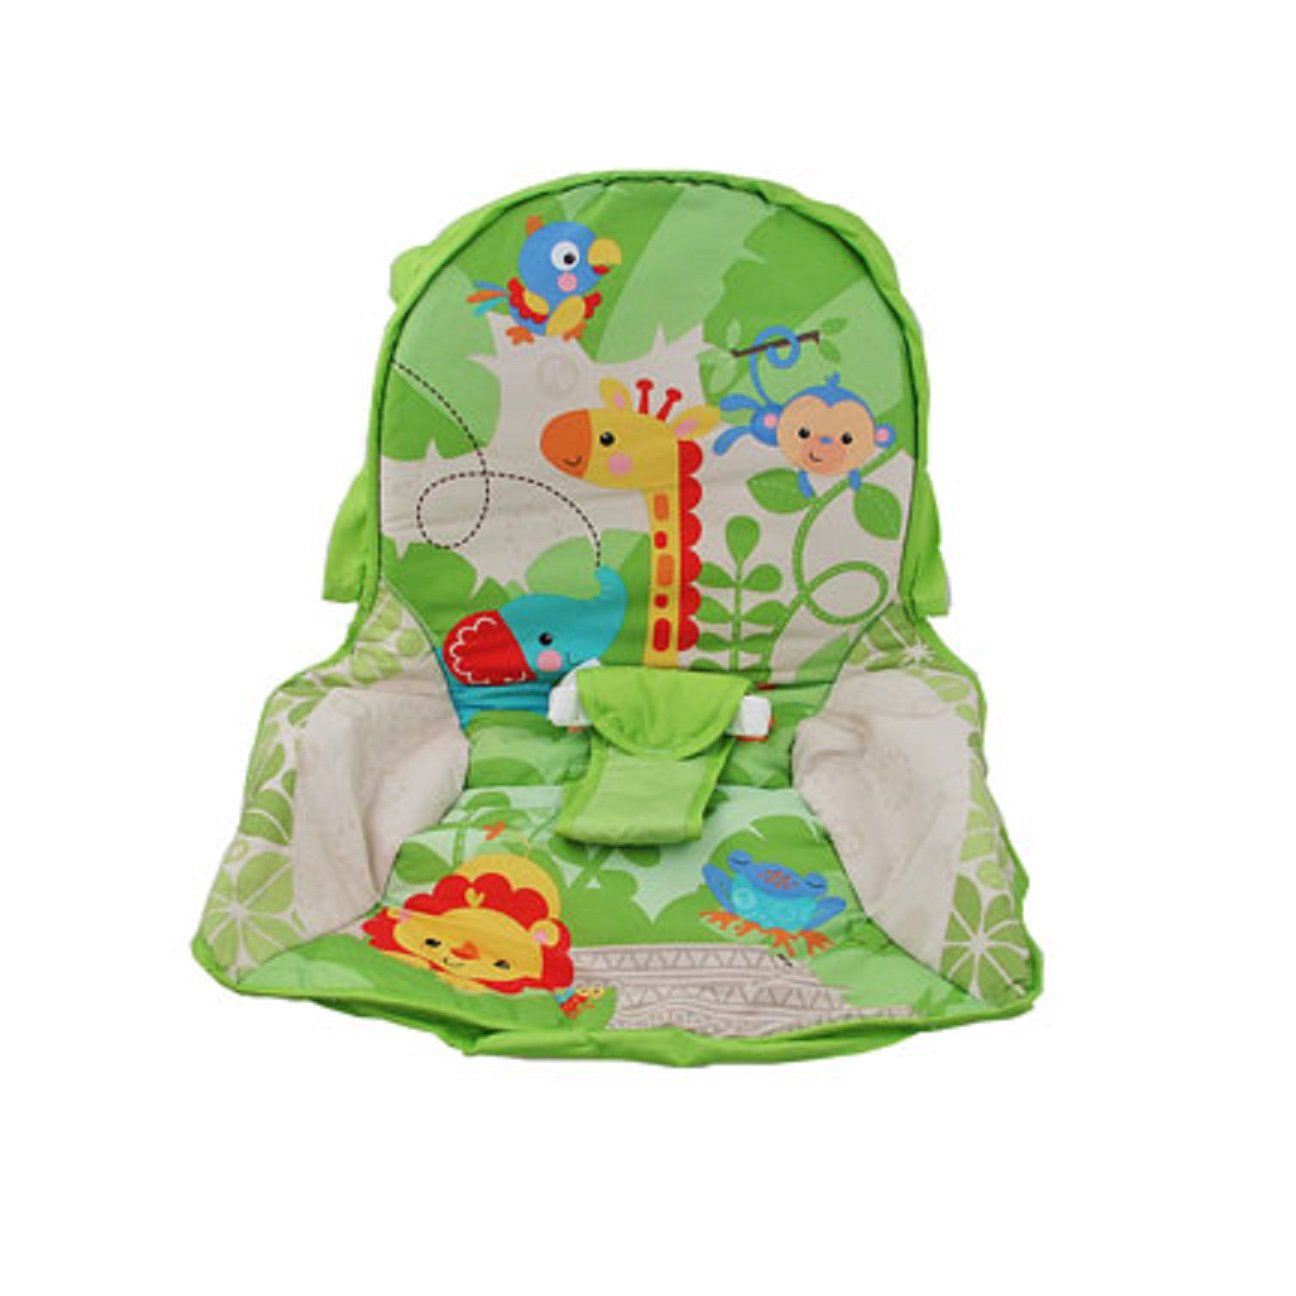 Fisher Price INFANT / NEWBORN TO TODDLER ROCKER Sleeper Replacement Seat Pad , X7047 RAINFOREST PAD by Fisher-Price